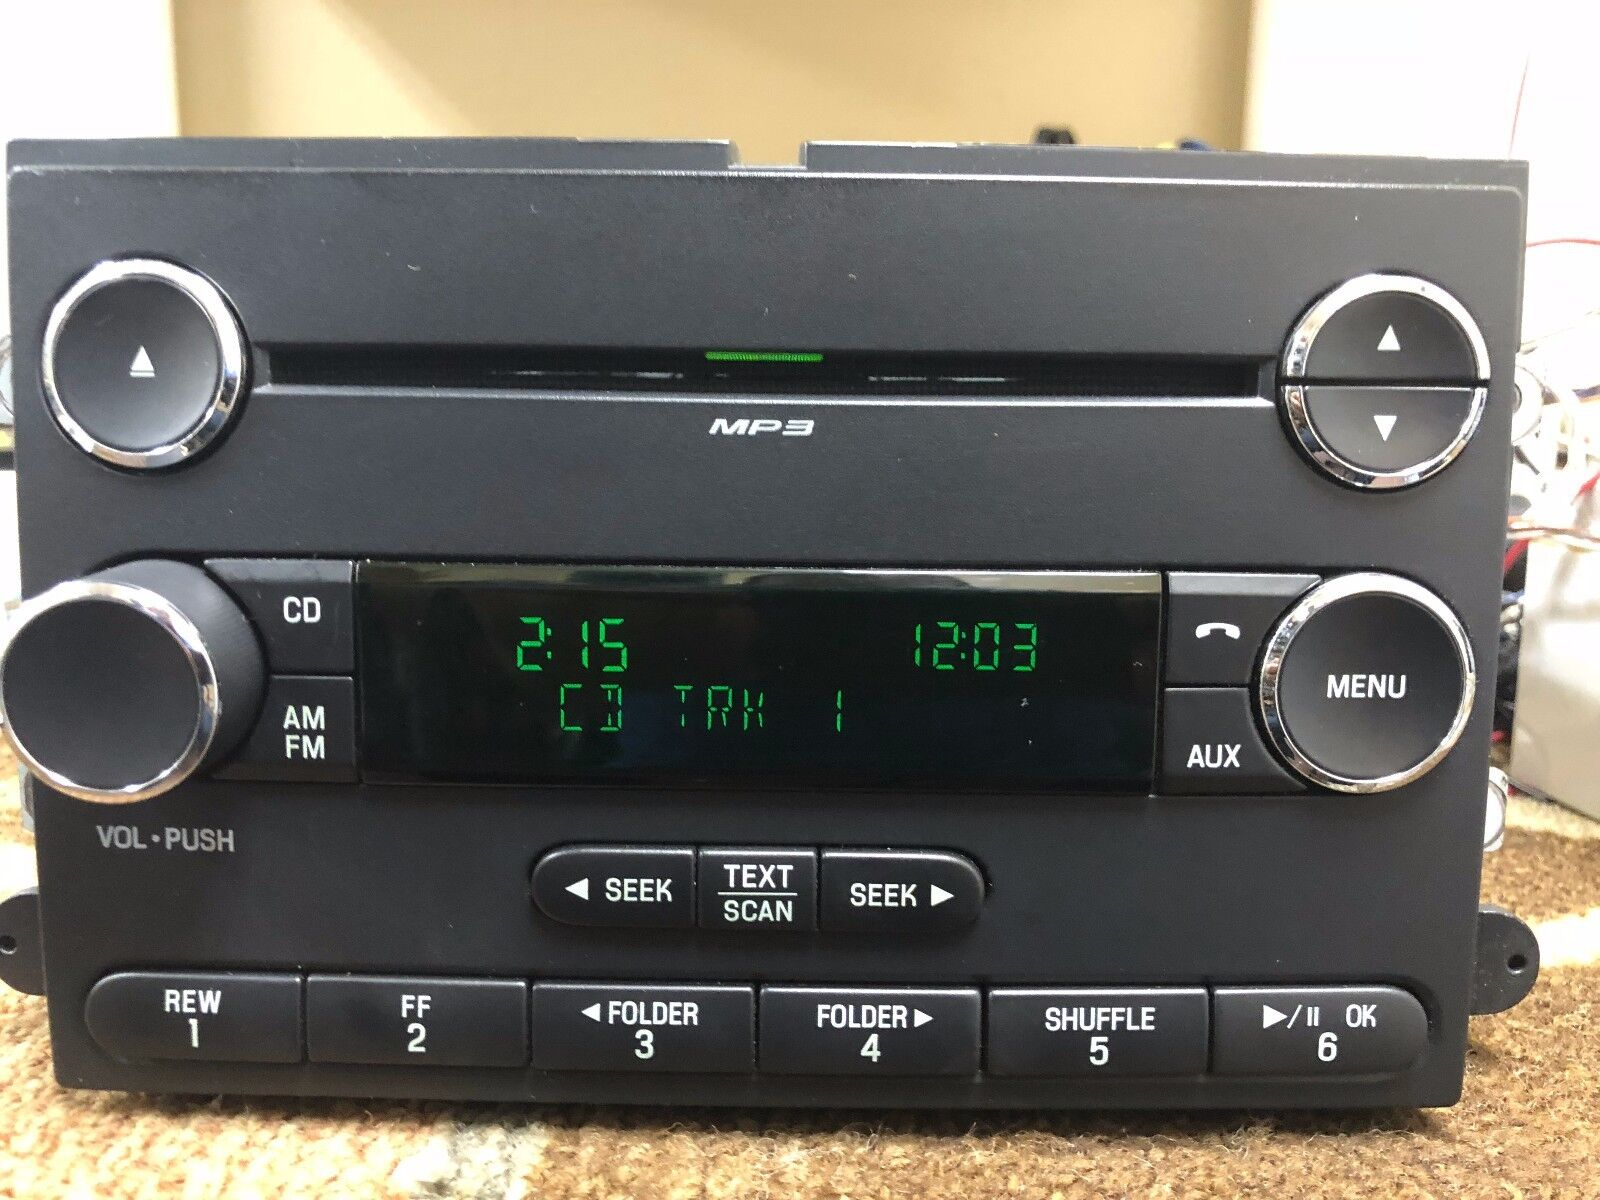 12 14 Ford Expedition Radio Single Disc Cd Player Mp3 Satellite Cl1t Changer Pinout Plays Burnt Cds And Mp3s Ready Requires Receiver Antenna Needs To Have Can Bus System Work